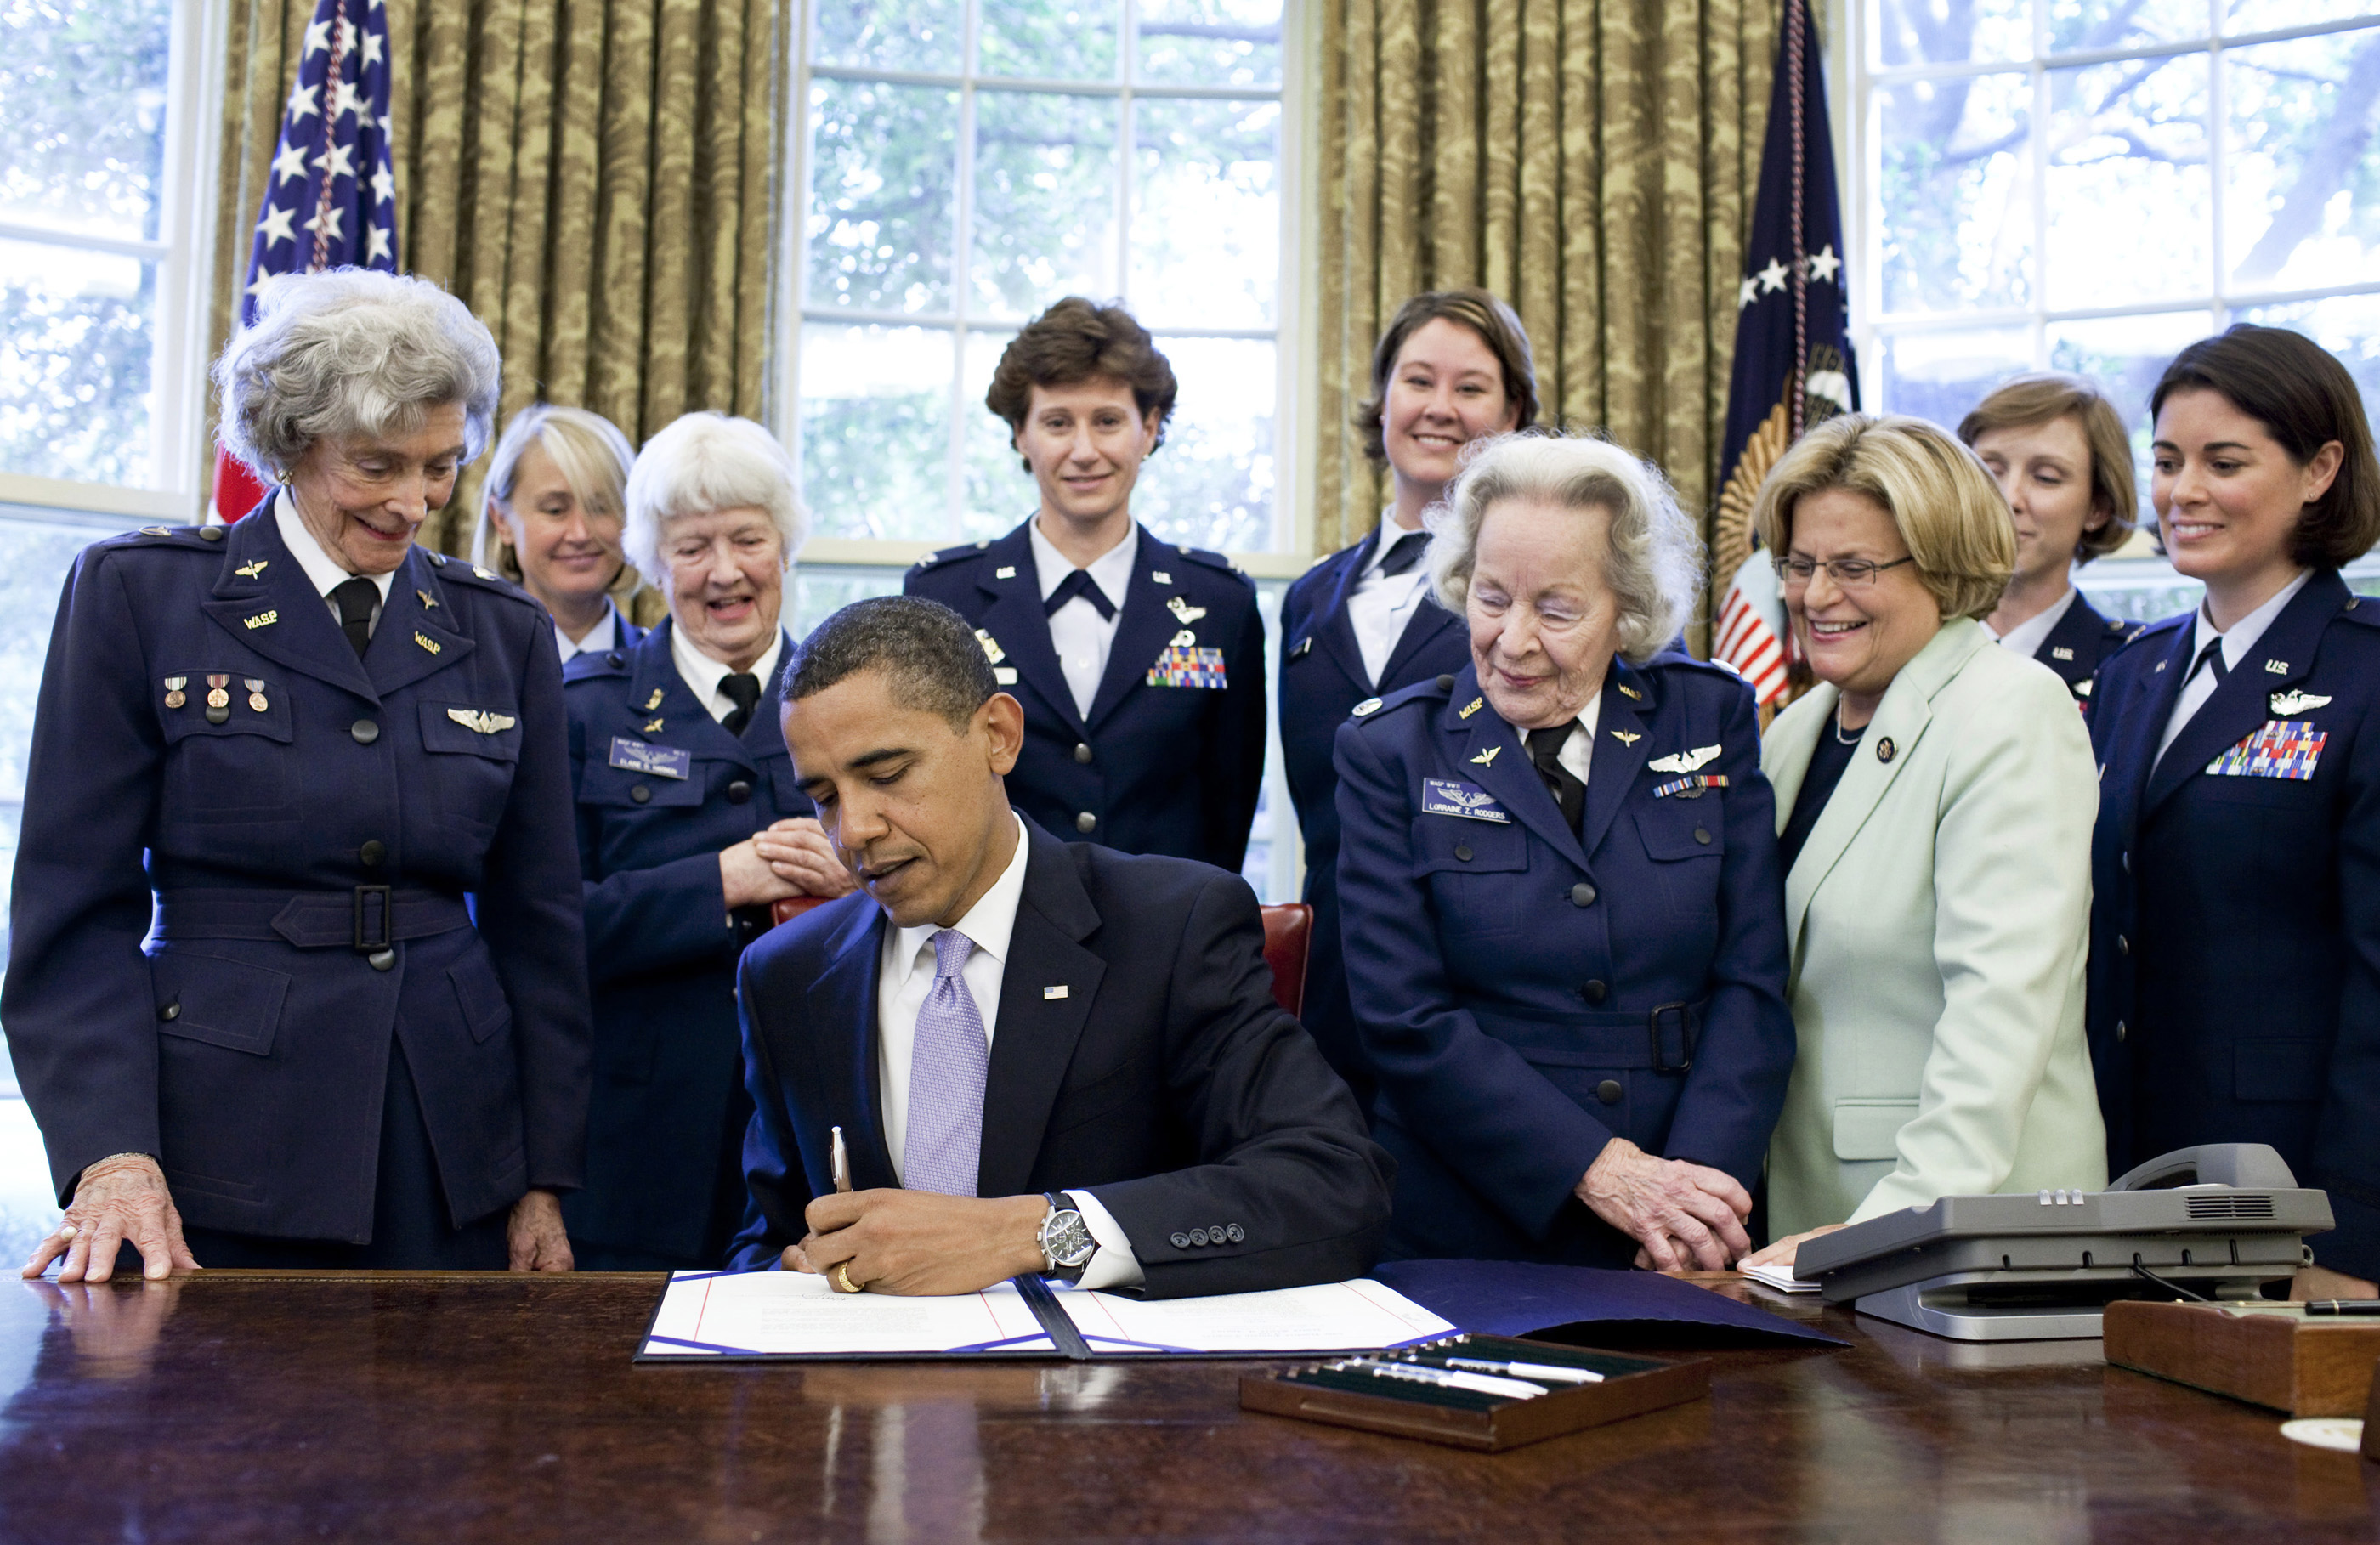 President Barack Obama signs S.614 in the Oval Office July 1 at the White House. The bill awards a Congressional Gold Medal to Women Airforce Service Pilots. The WASP program was established during World War II, and from 1942 to 1943, more than 1,000 women joined, flying 60 million miles of noncombat military missions. Of the women who received their wings as Women Airforce Service Pilots, approximately 300 are living today. (Official White House photo/Pete Souza)